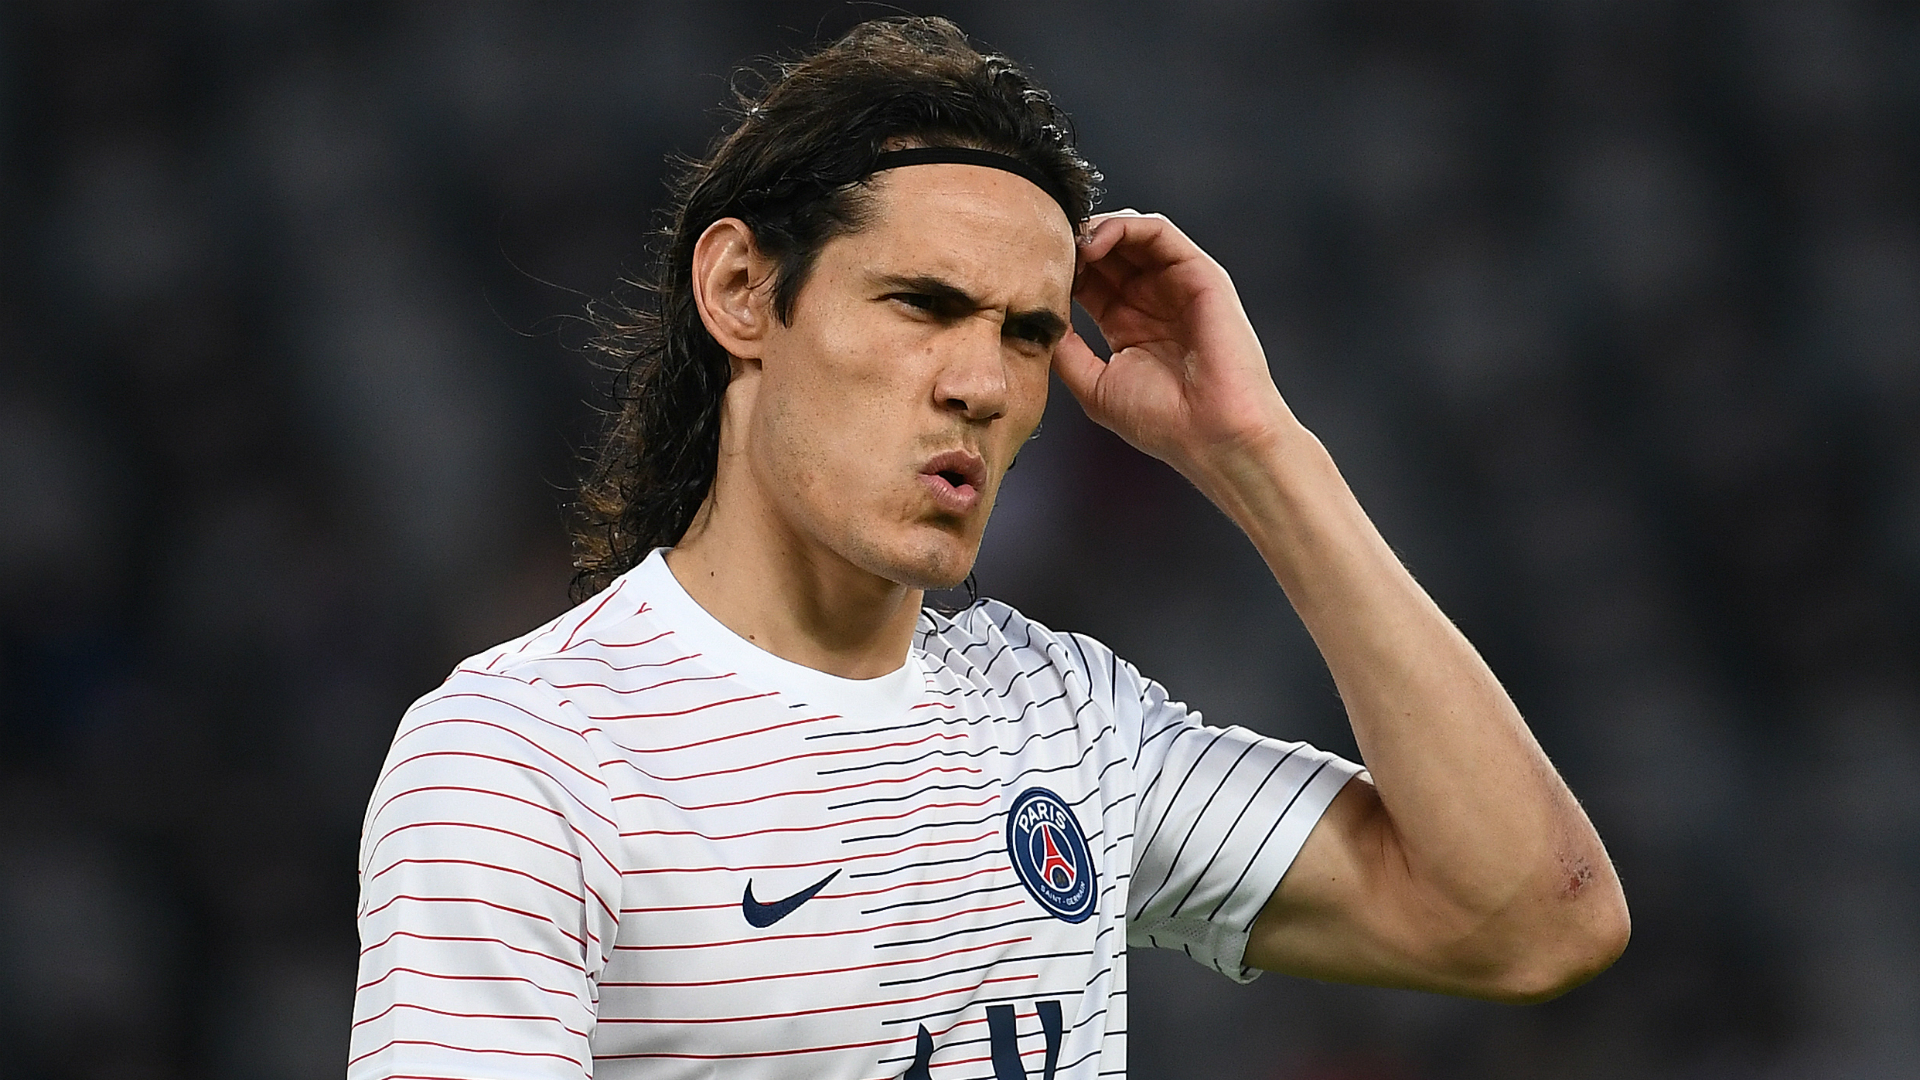 Tuchel tells Cavani 'there are worse things' than staying at PSG